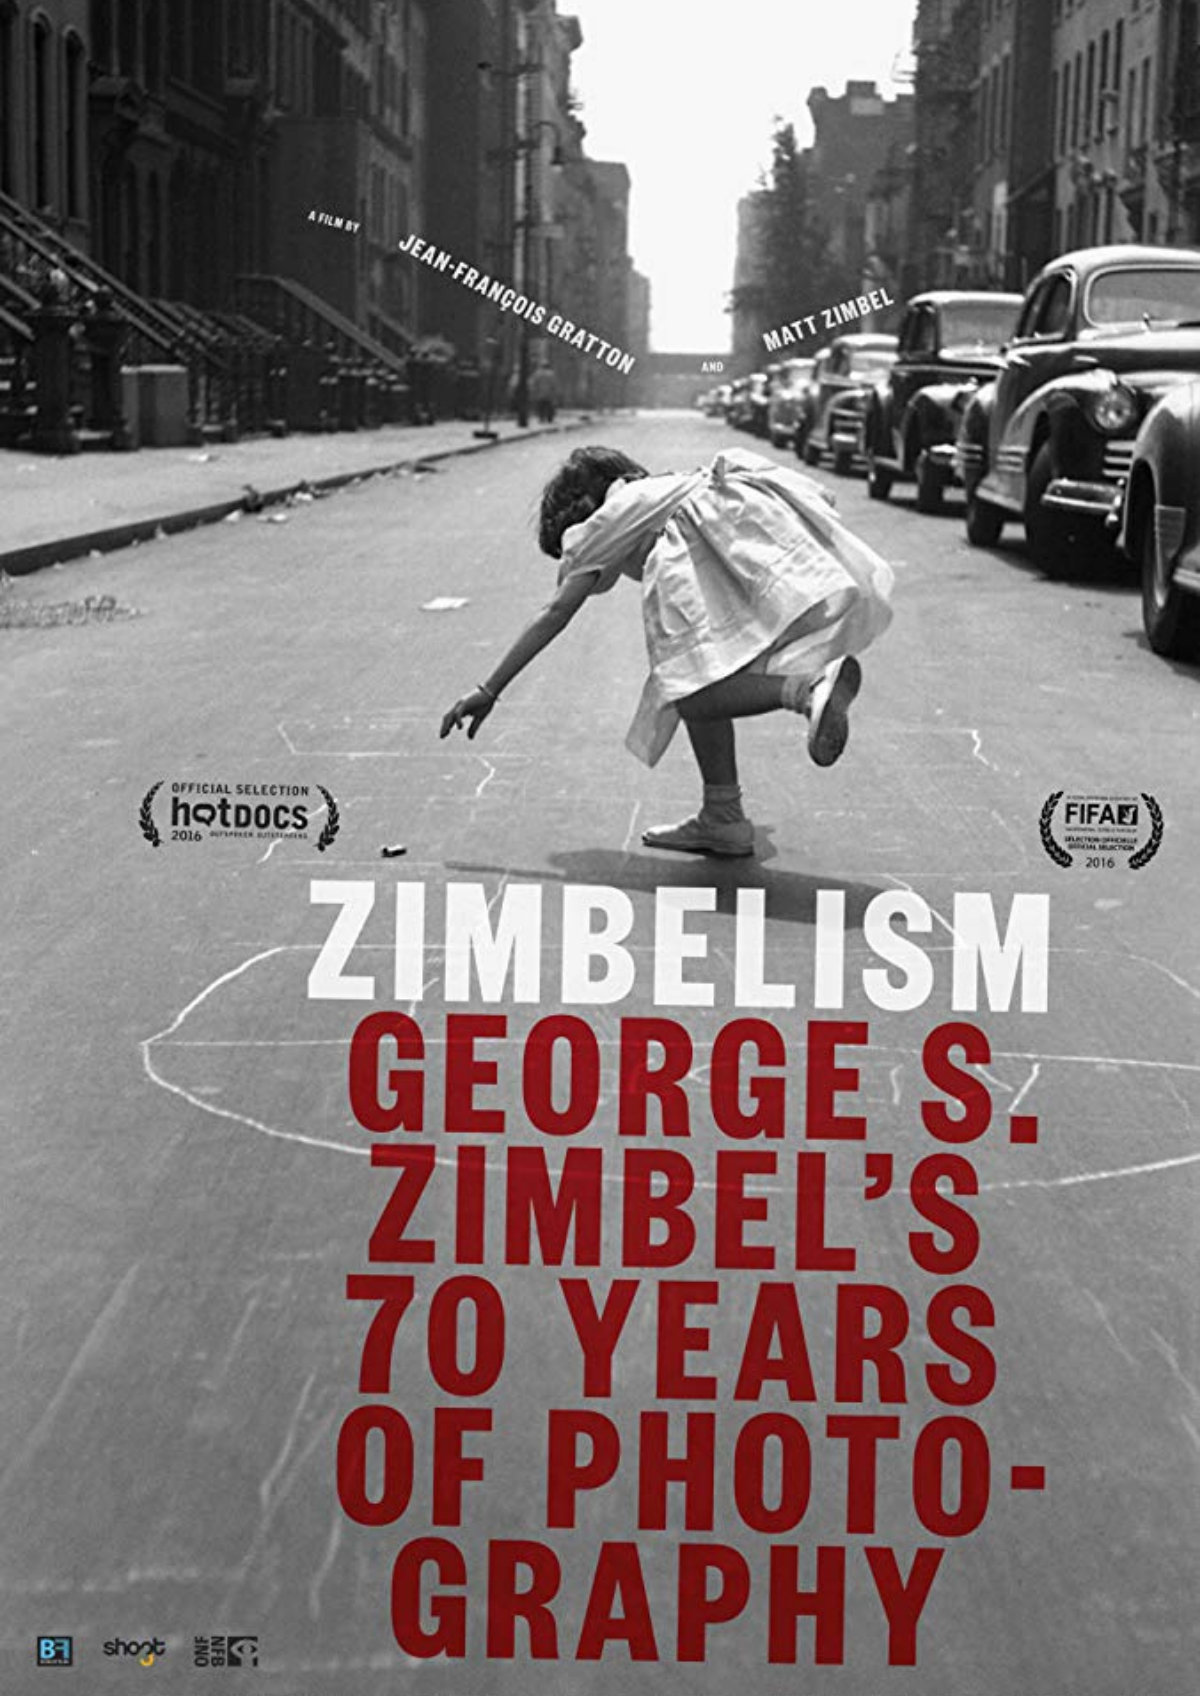 'Zimbelism' movie poster